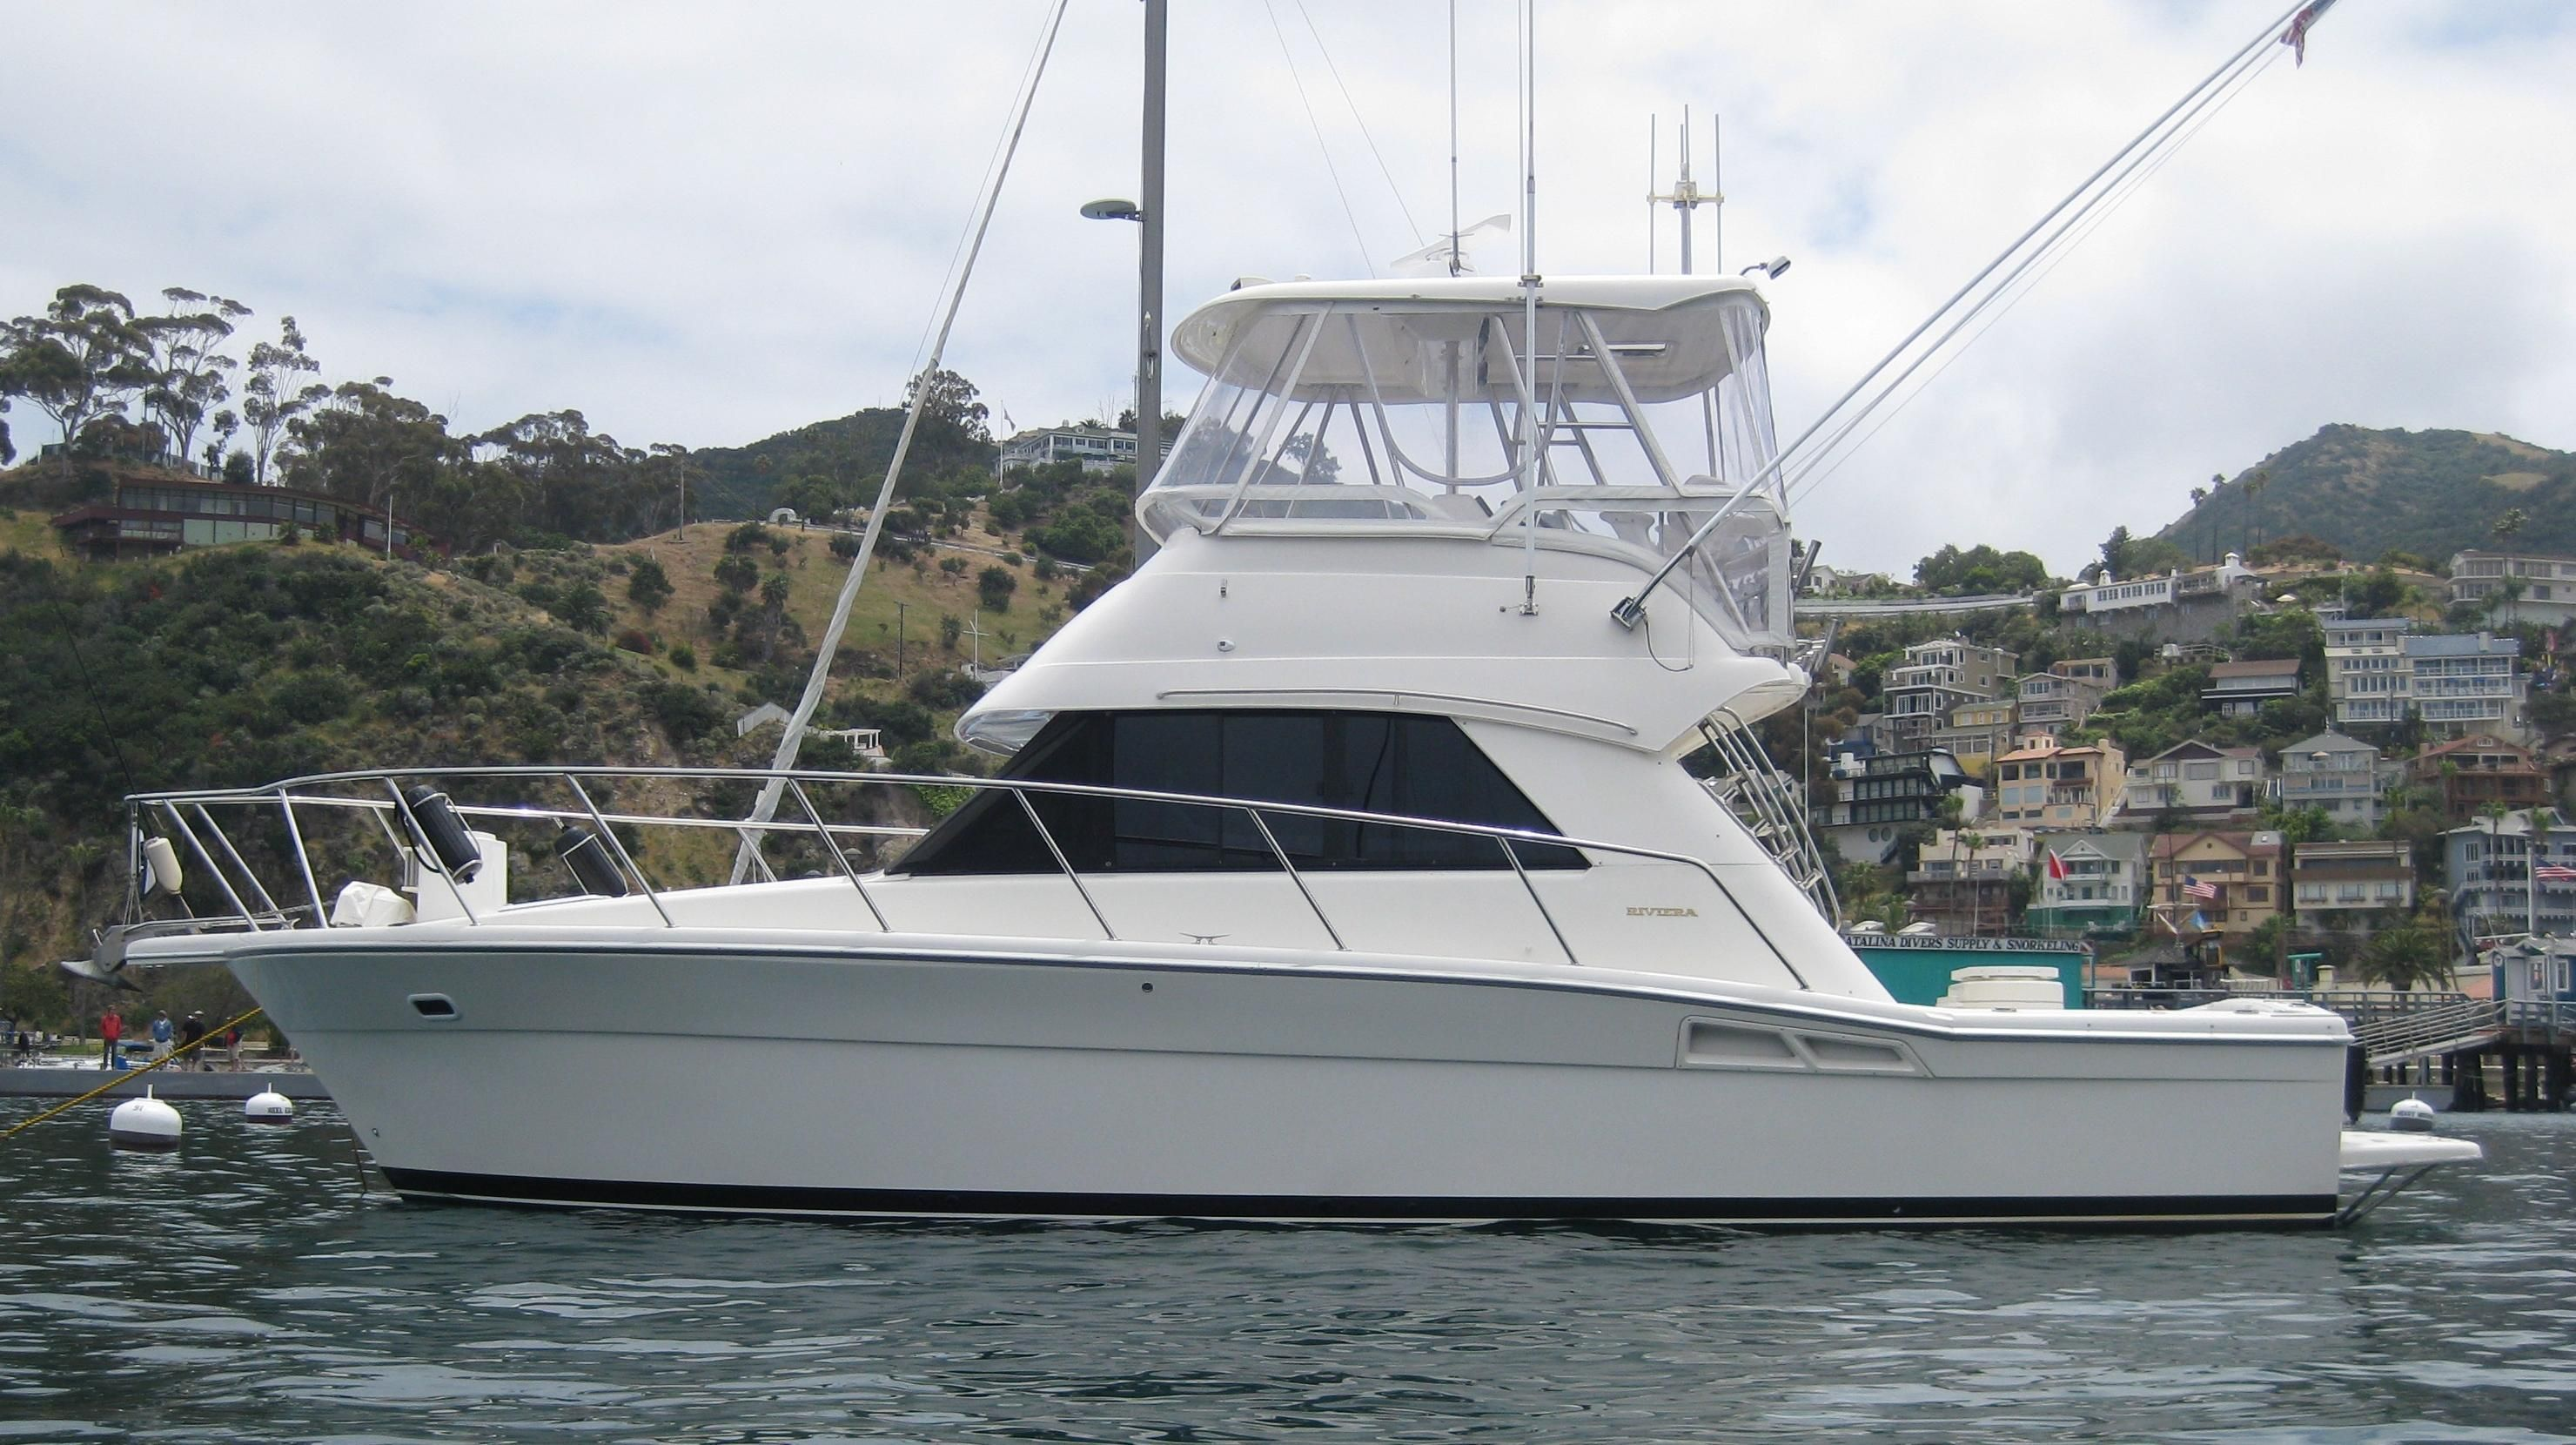 Photo of our 36' Riviera Tournament Edition Sportfisher